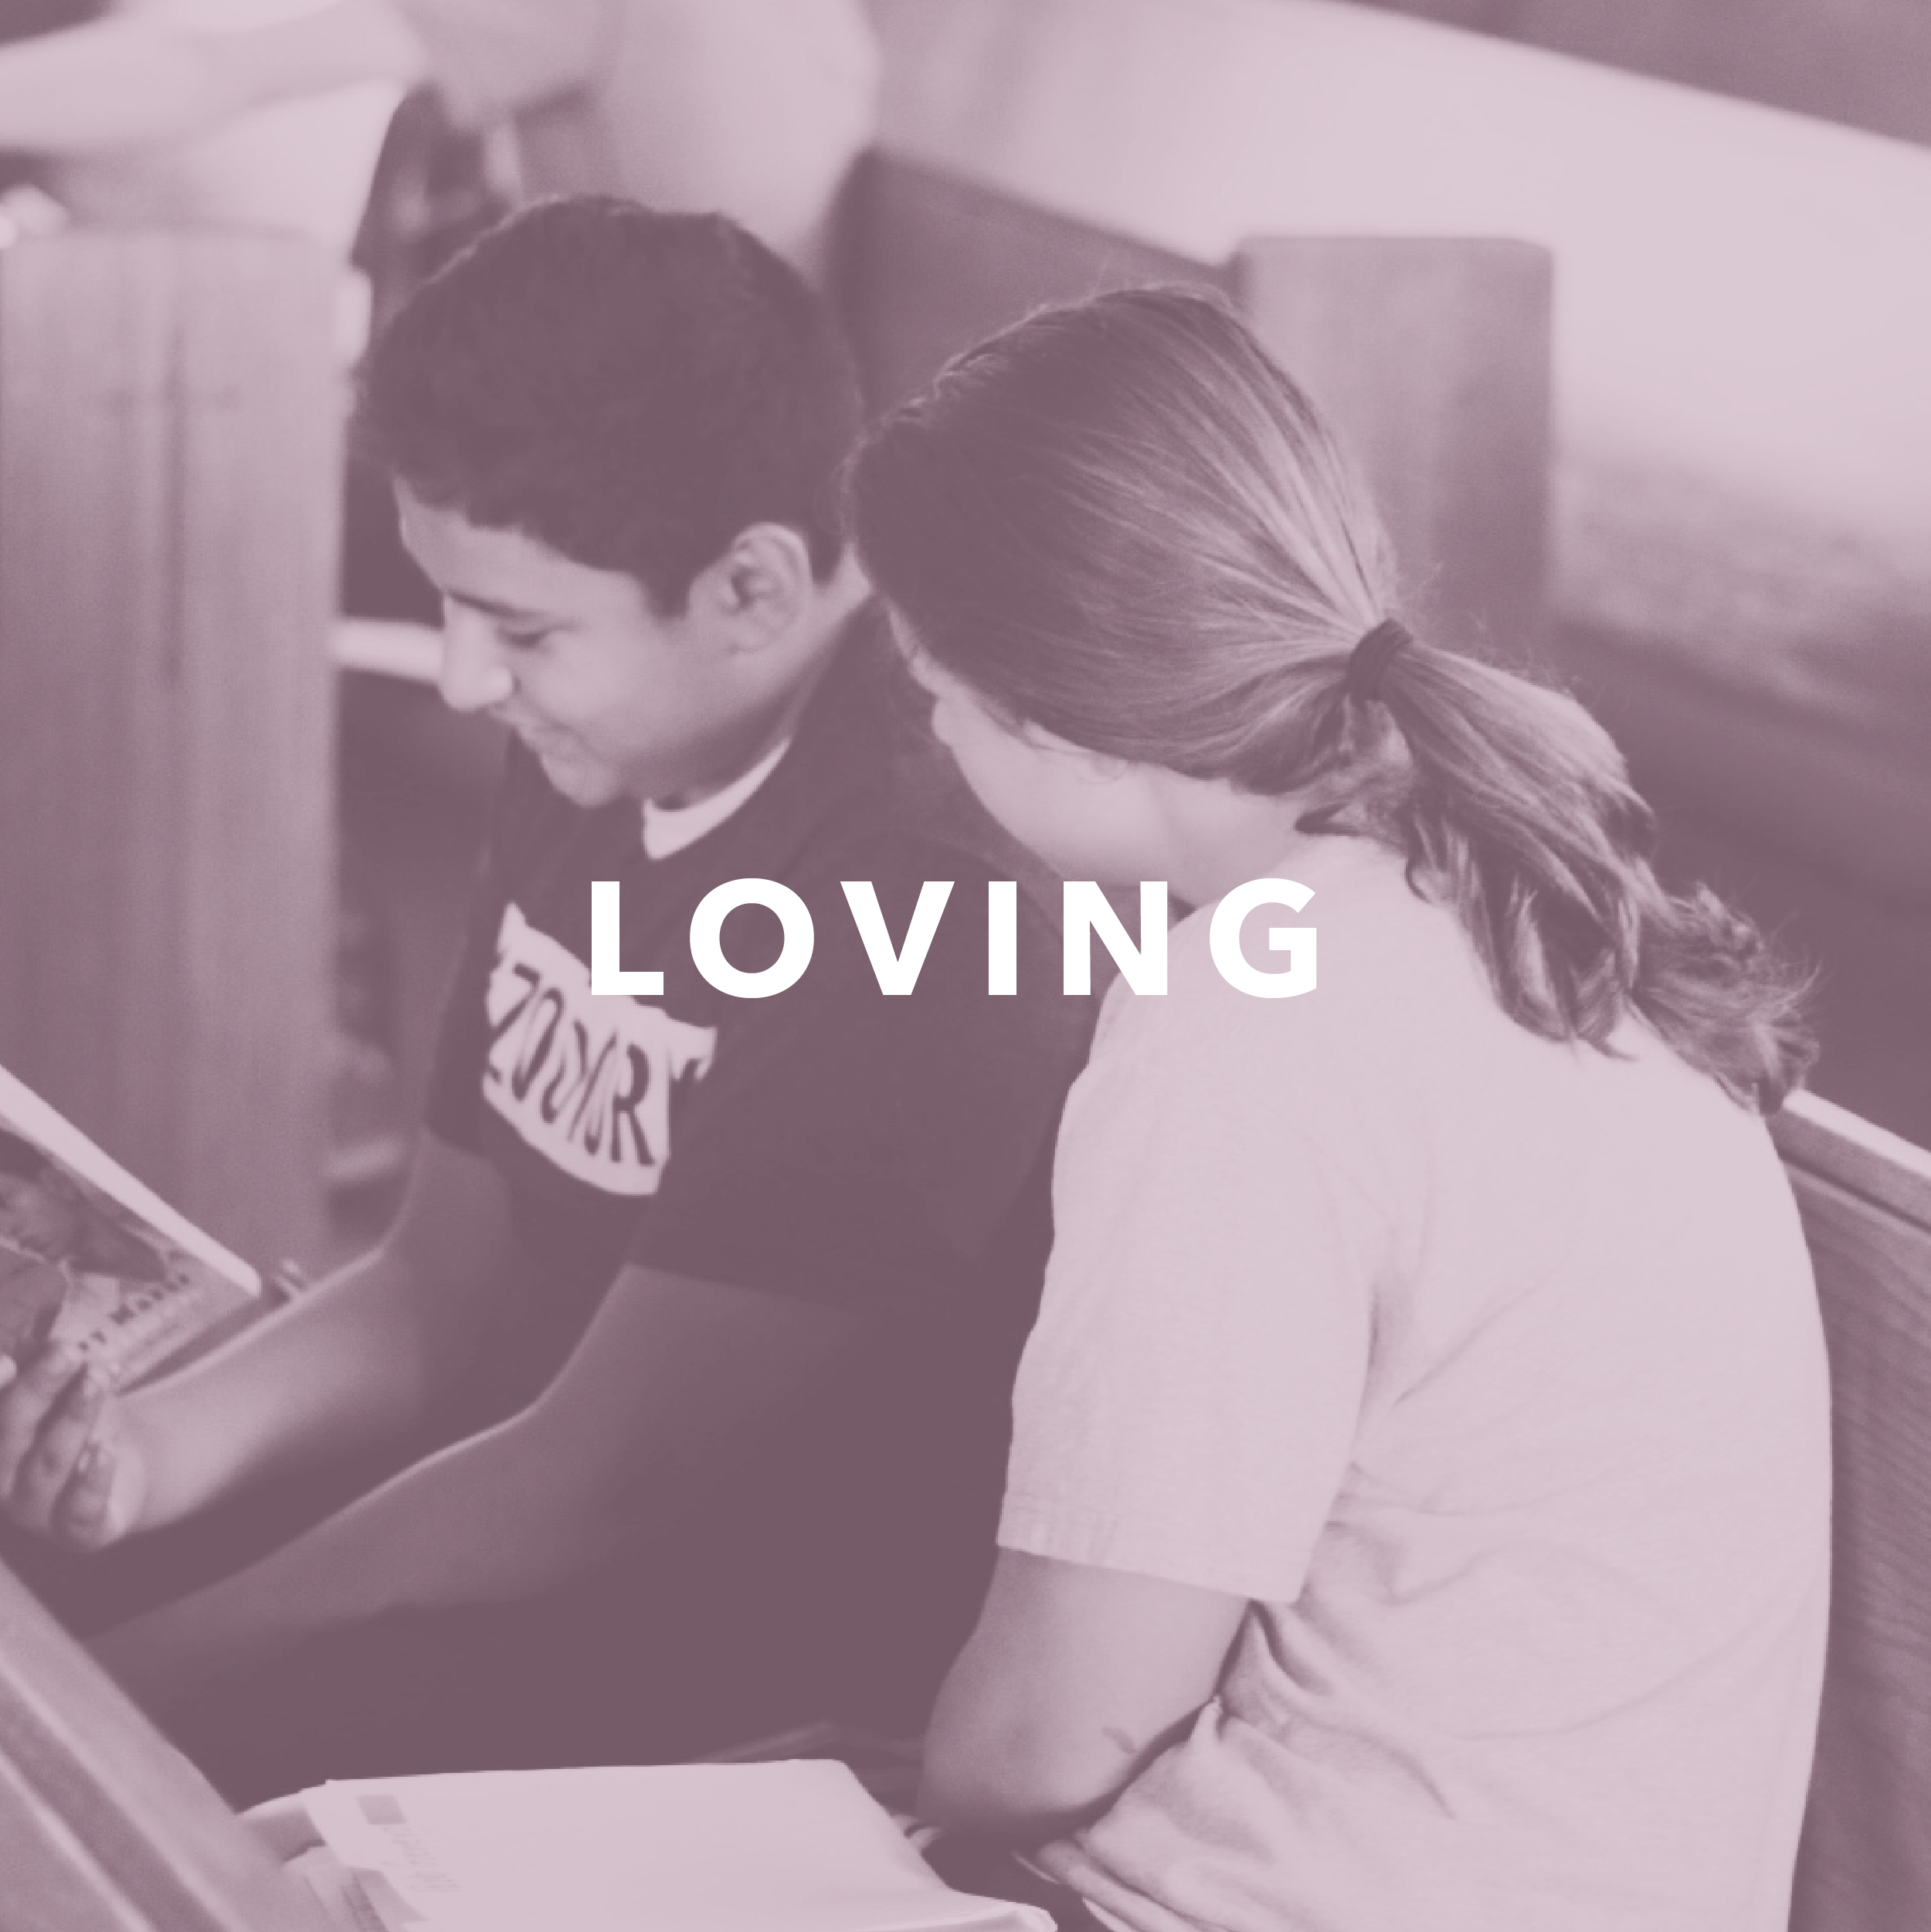 We are called to love anyone and everyone God puts in our pews and in our paths.